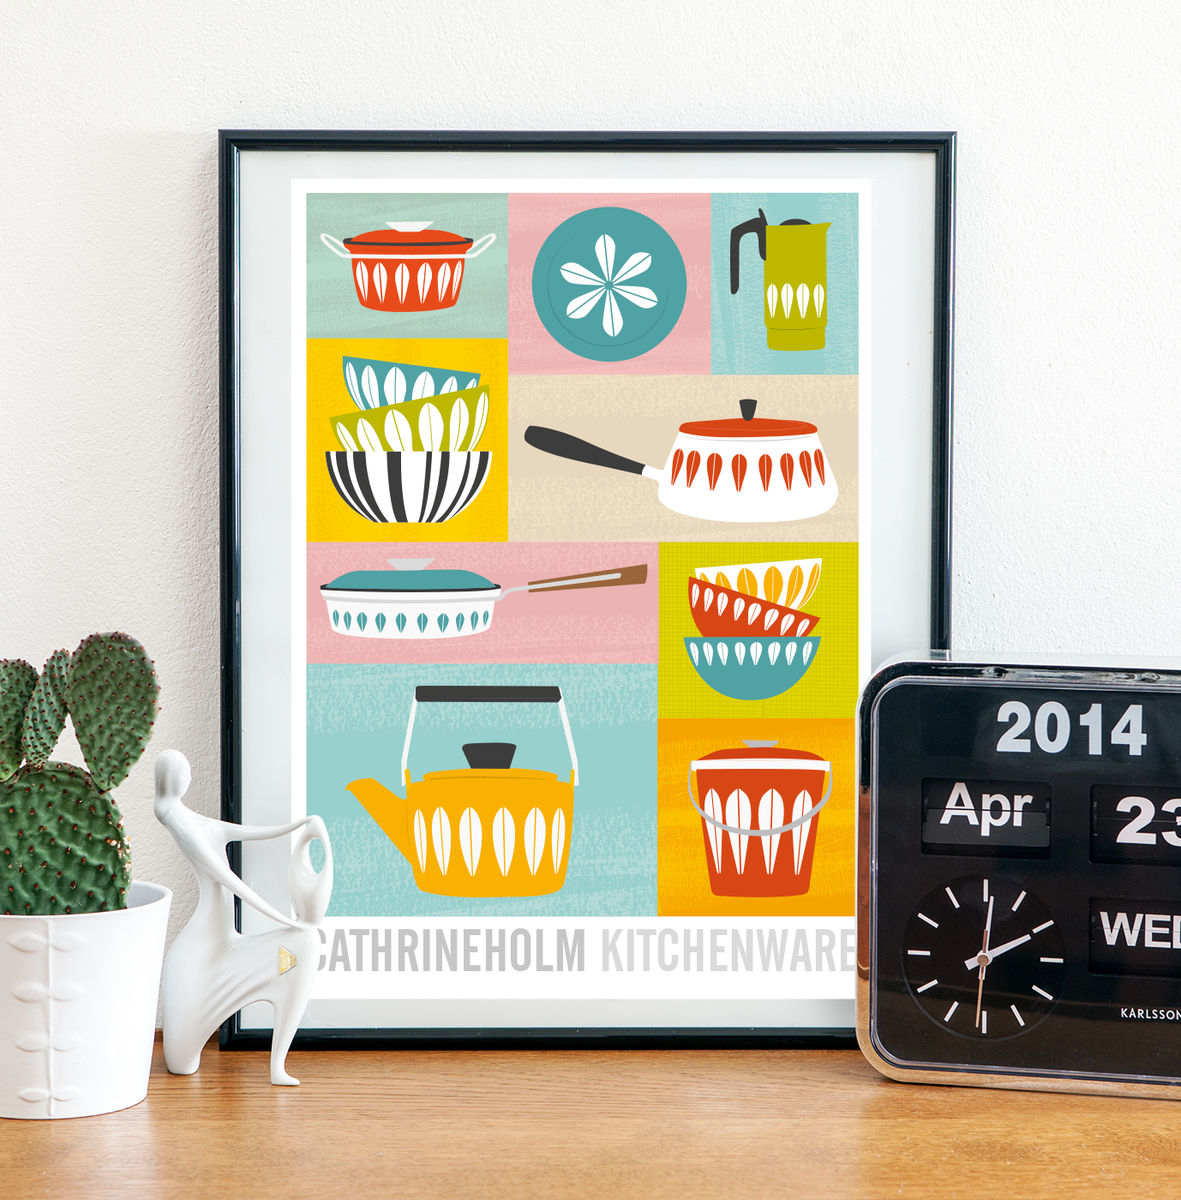 Cathrineholm retro kitchenware print - product image